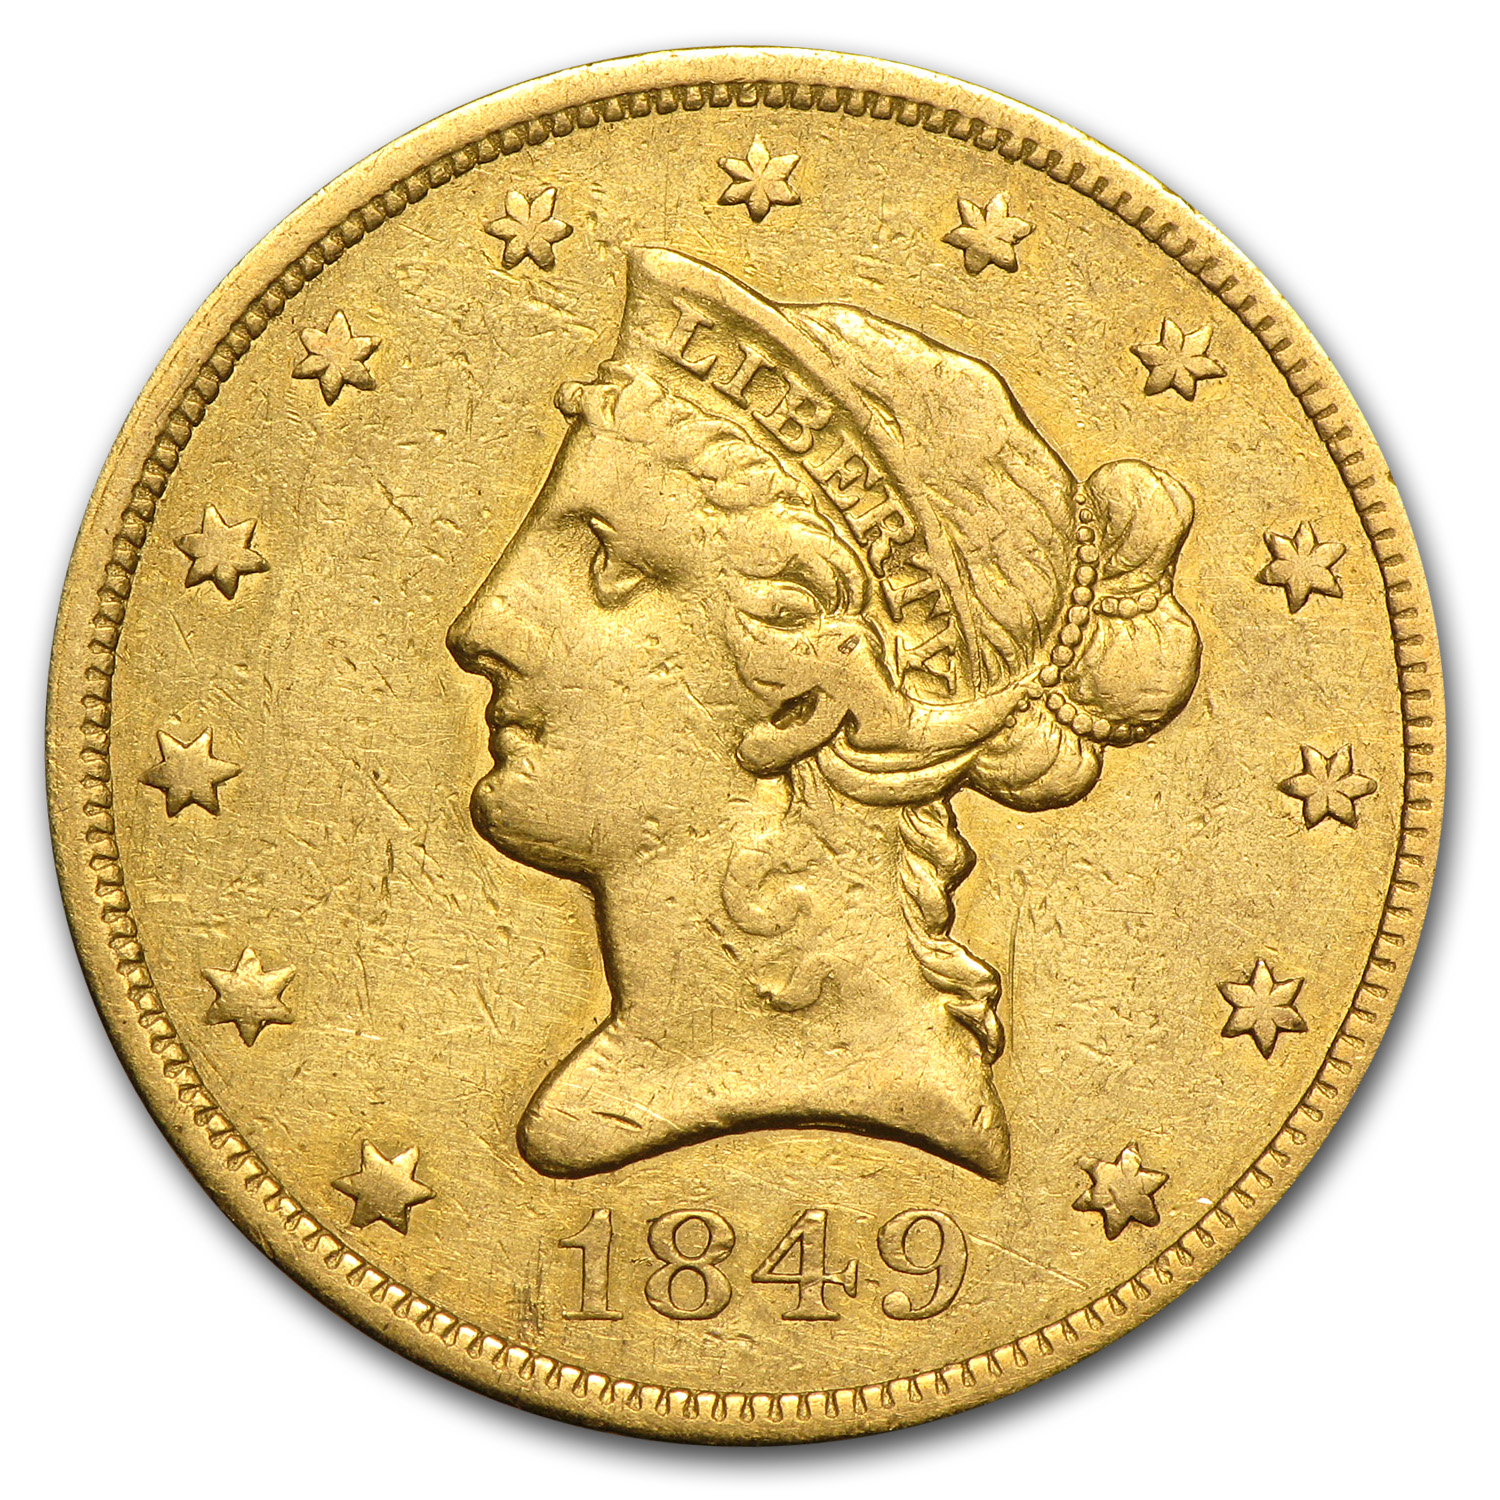 1849 $10 Liberty Gold Eagle - Fine Details - Cleaned